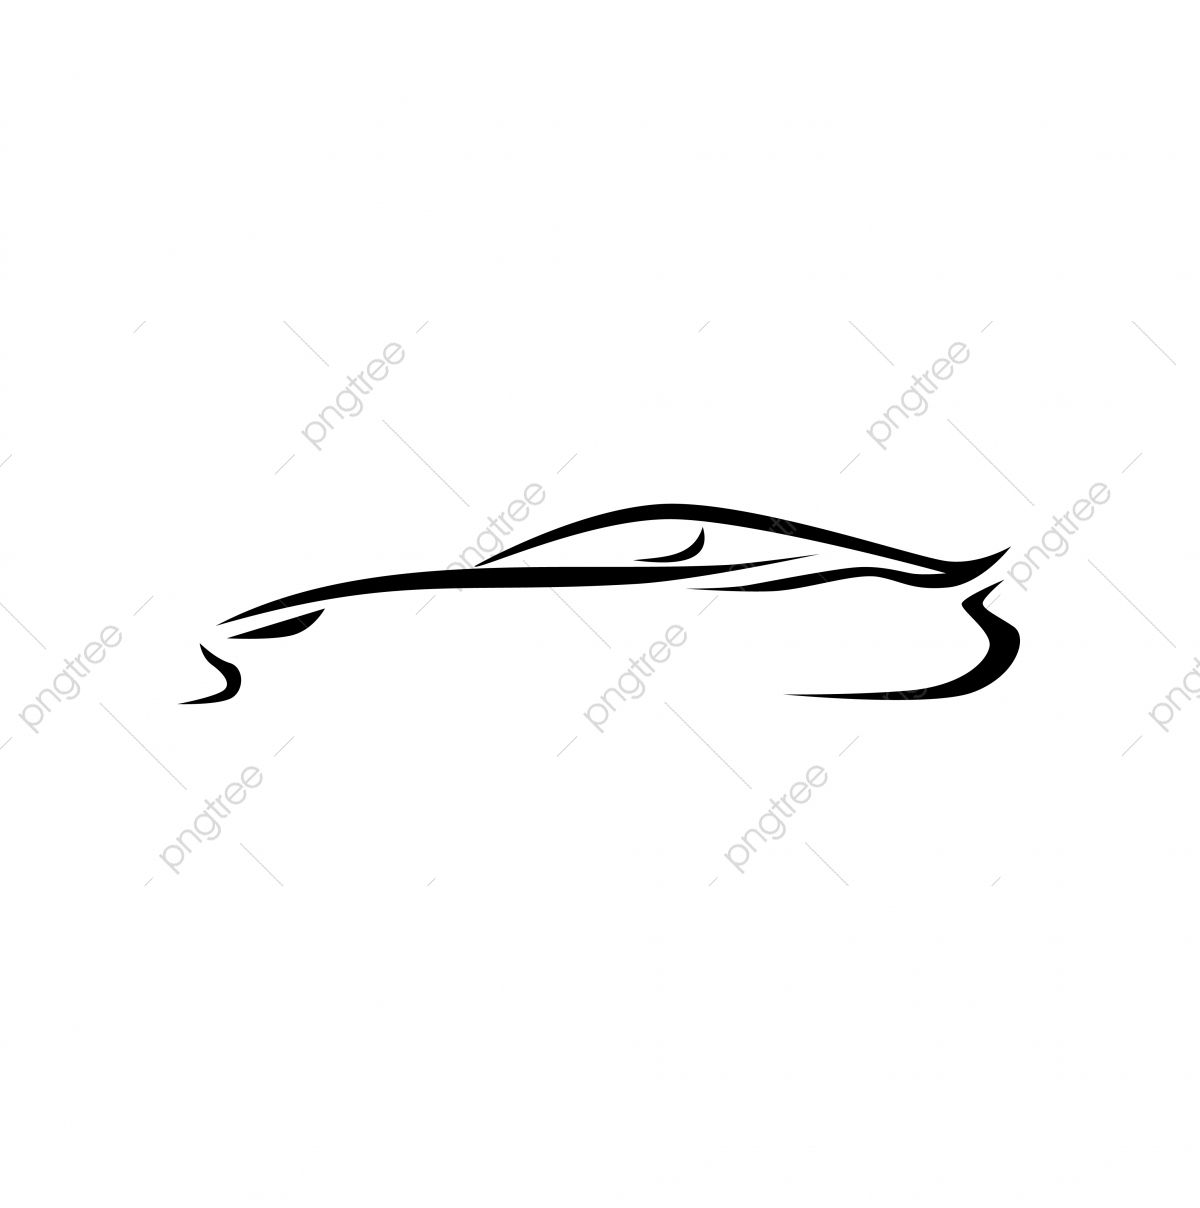 Car Silhouette Simple Logo Car Icons Logo Icons Simple Icons Png And Vector With Transparent Background For Free Download Car Silhouette Logo Silhouette Simple Logo